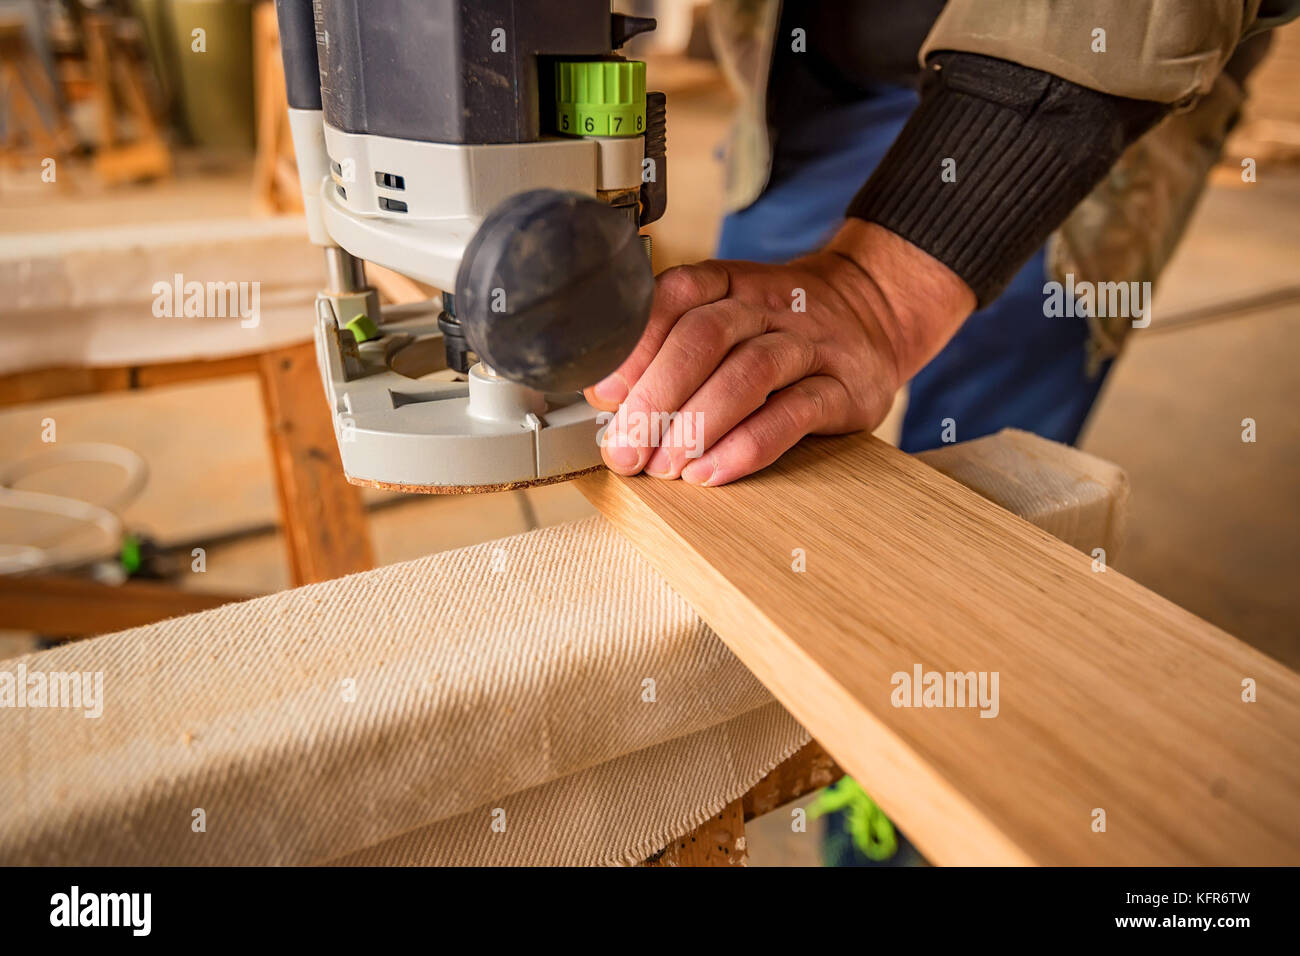 Man processing wood with router or moulding machine in a woodworking shop - Stock Image